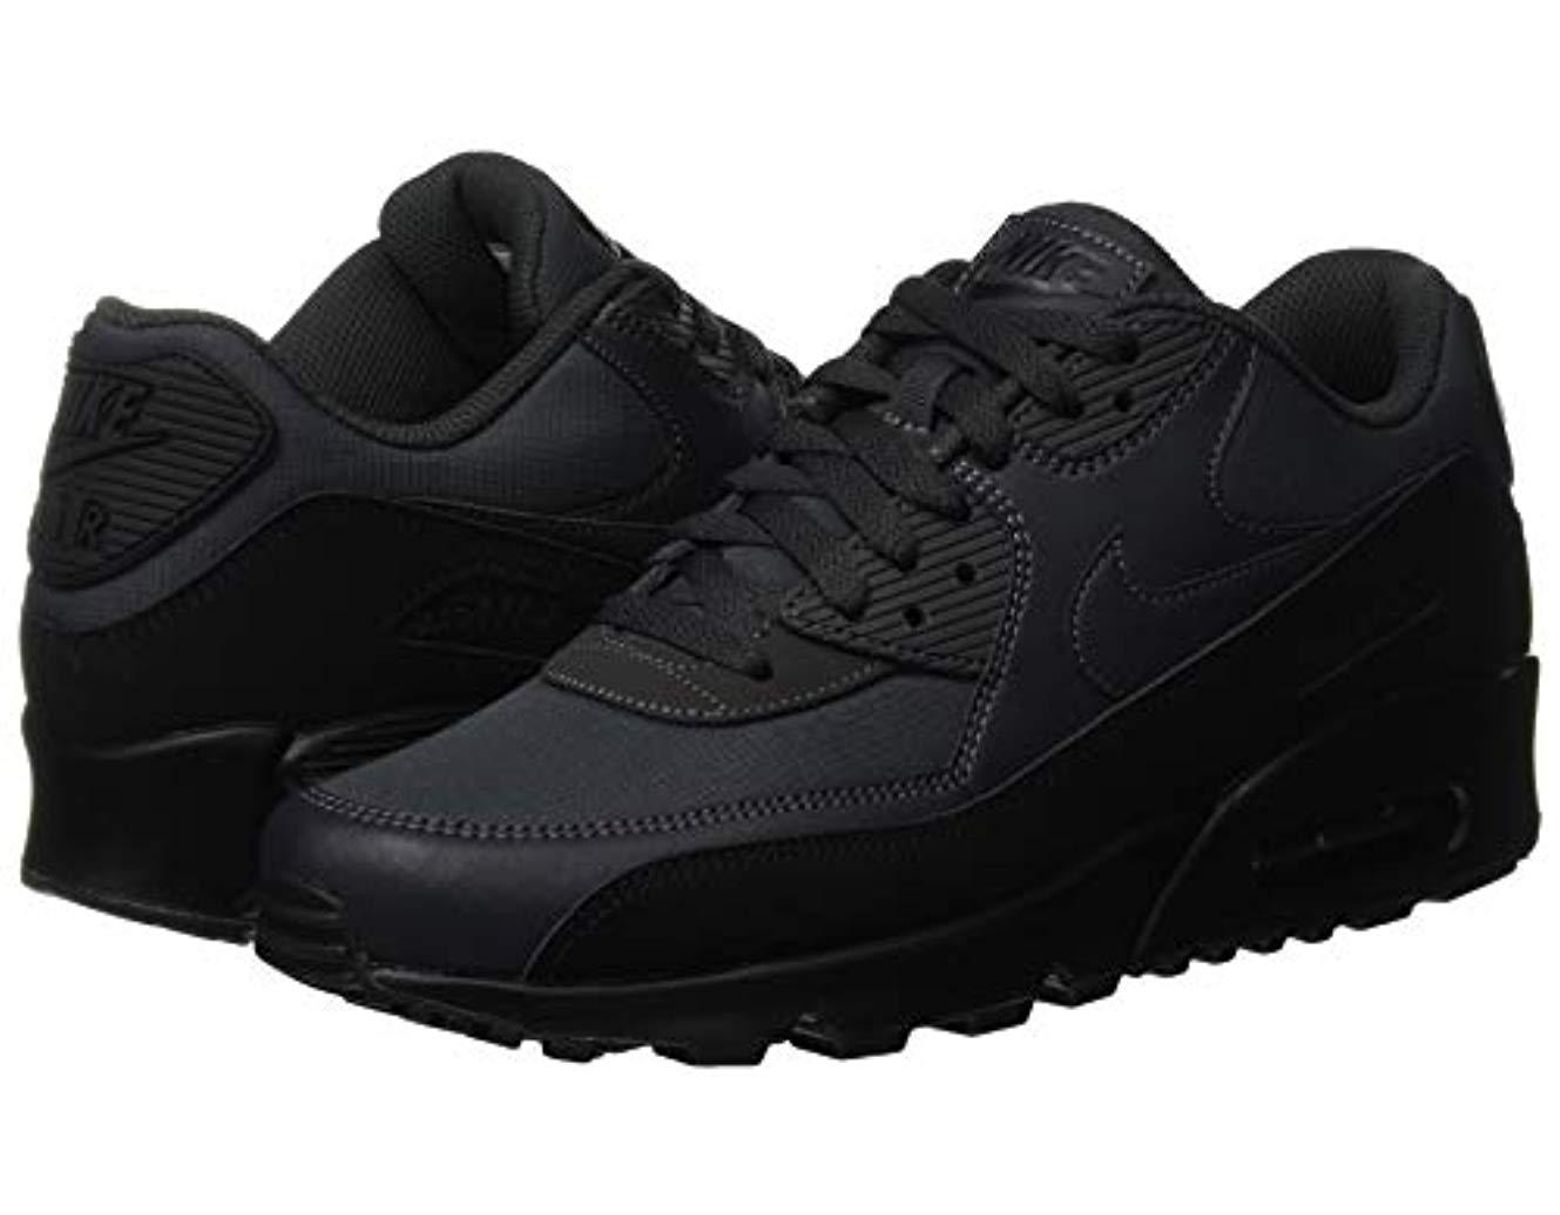 online store 347d2 5e962 Nike Air Max 90 Essential Gymnastics Shoes in Black for Men - Save 41% -  Lyst